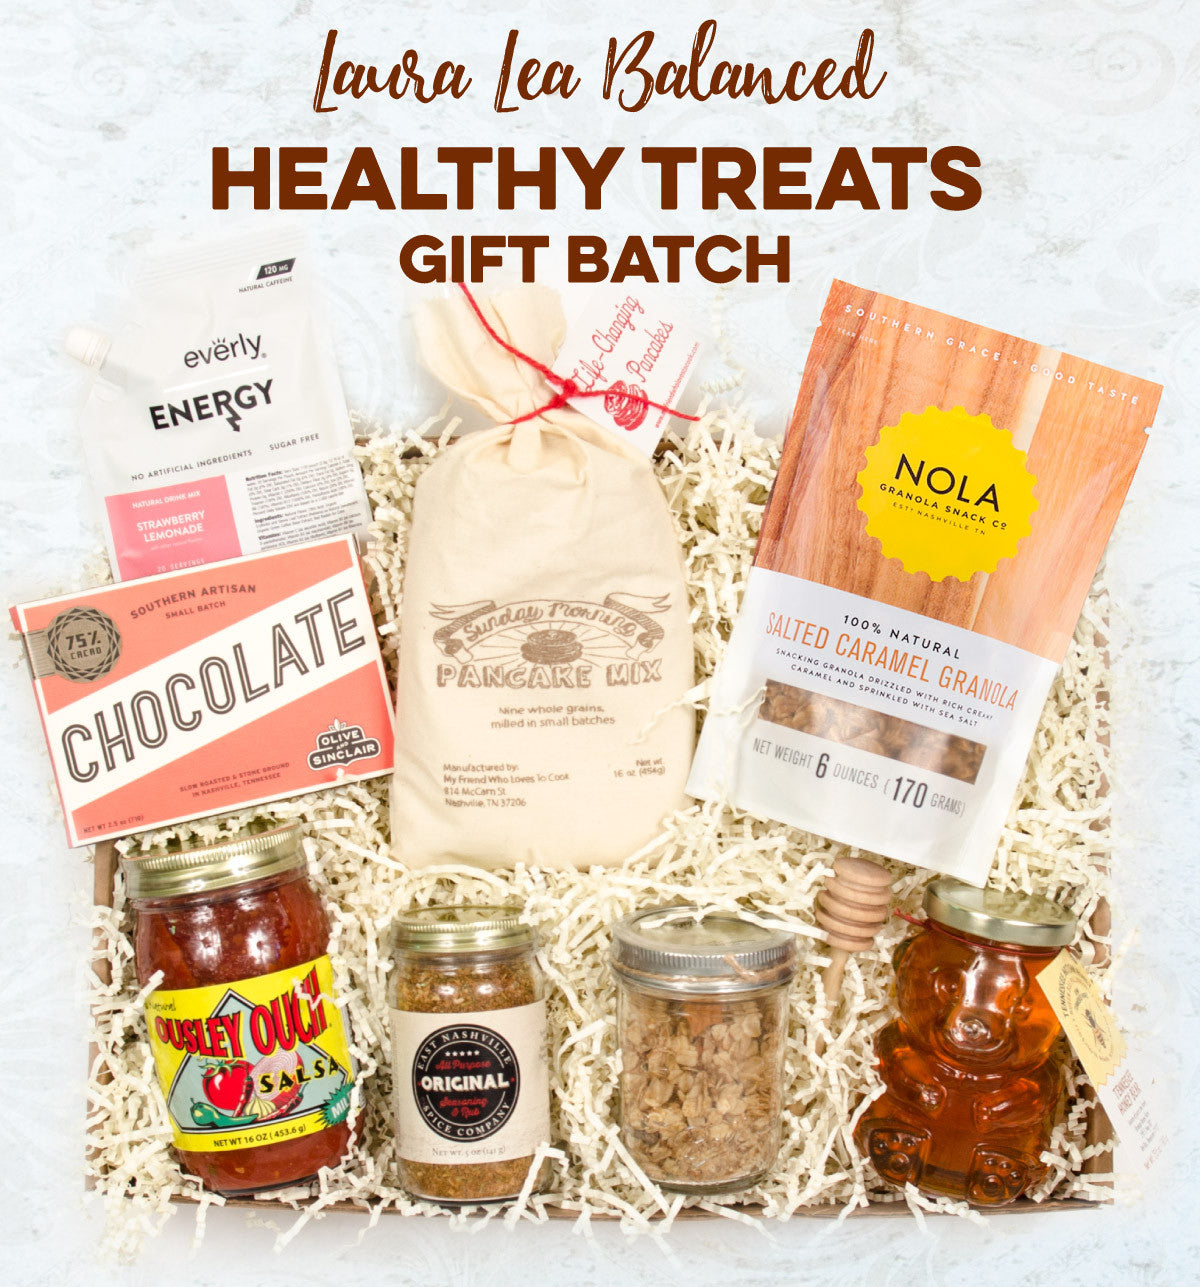 Laura Lea Balanced Healthy Treats Gift Batch